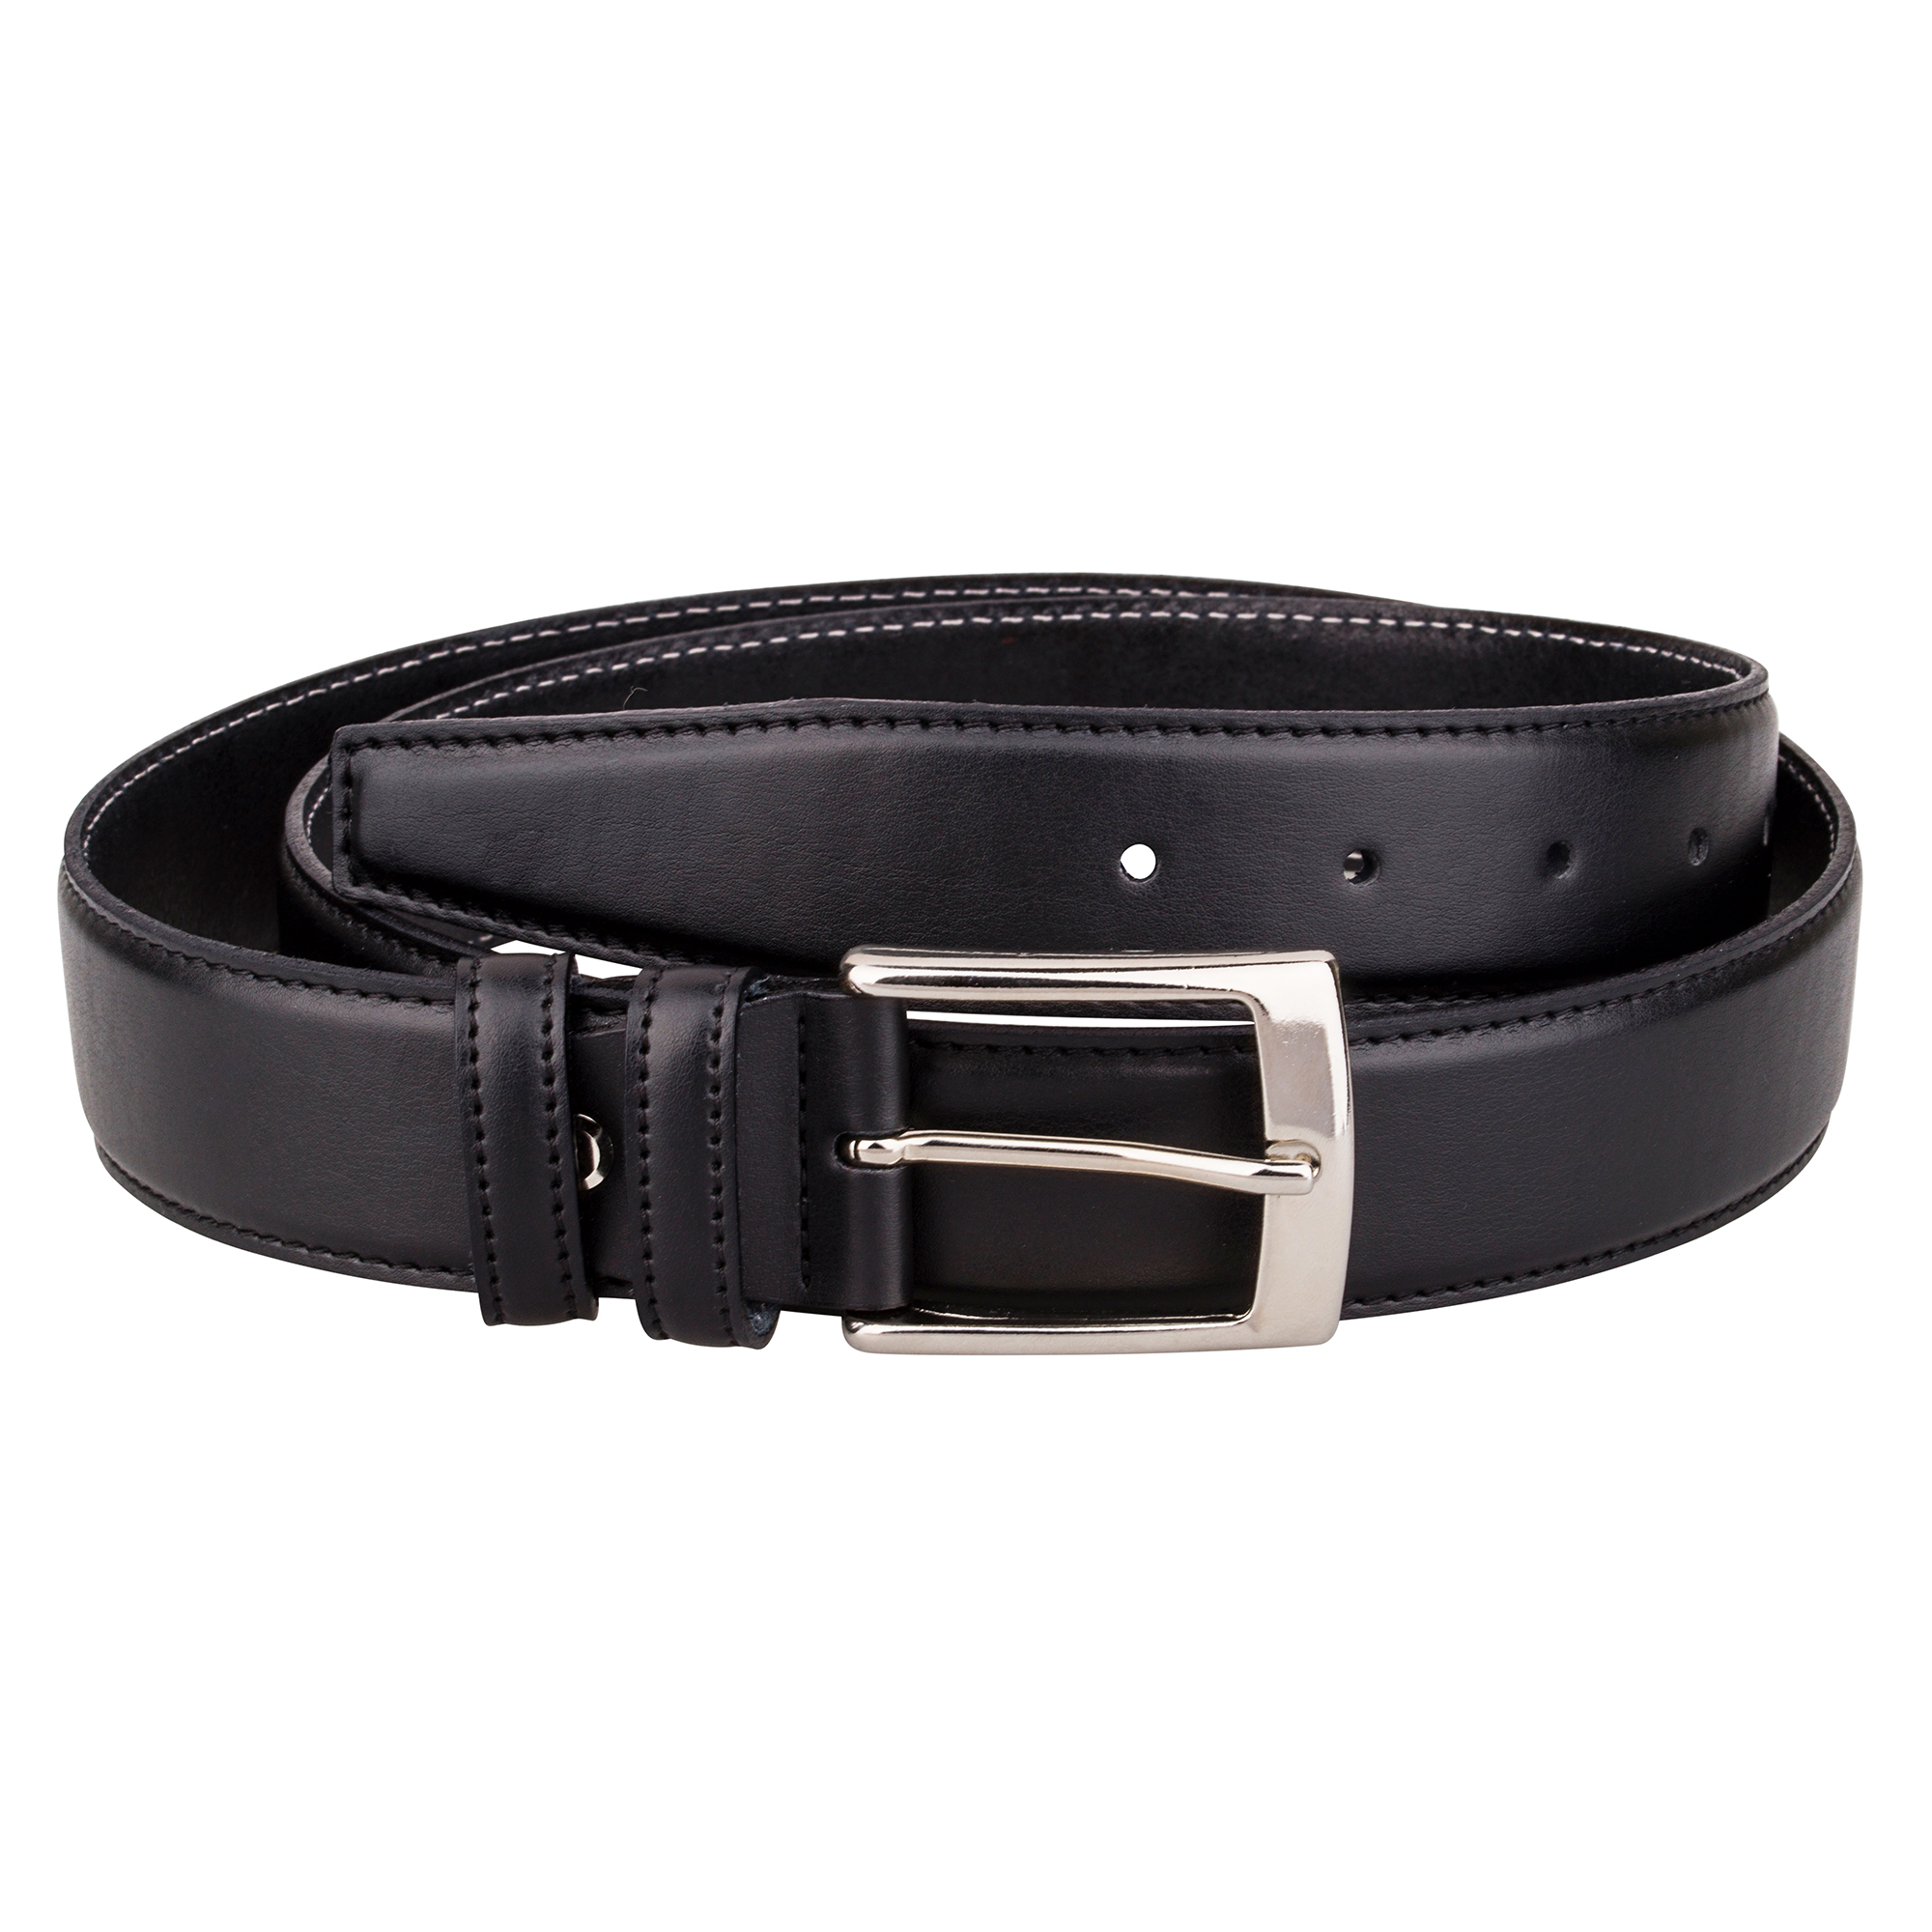 dress belt capo pelle mens belts black genuine